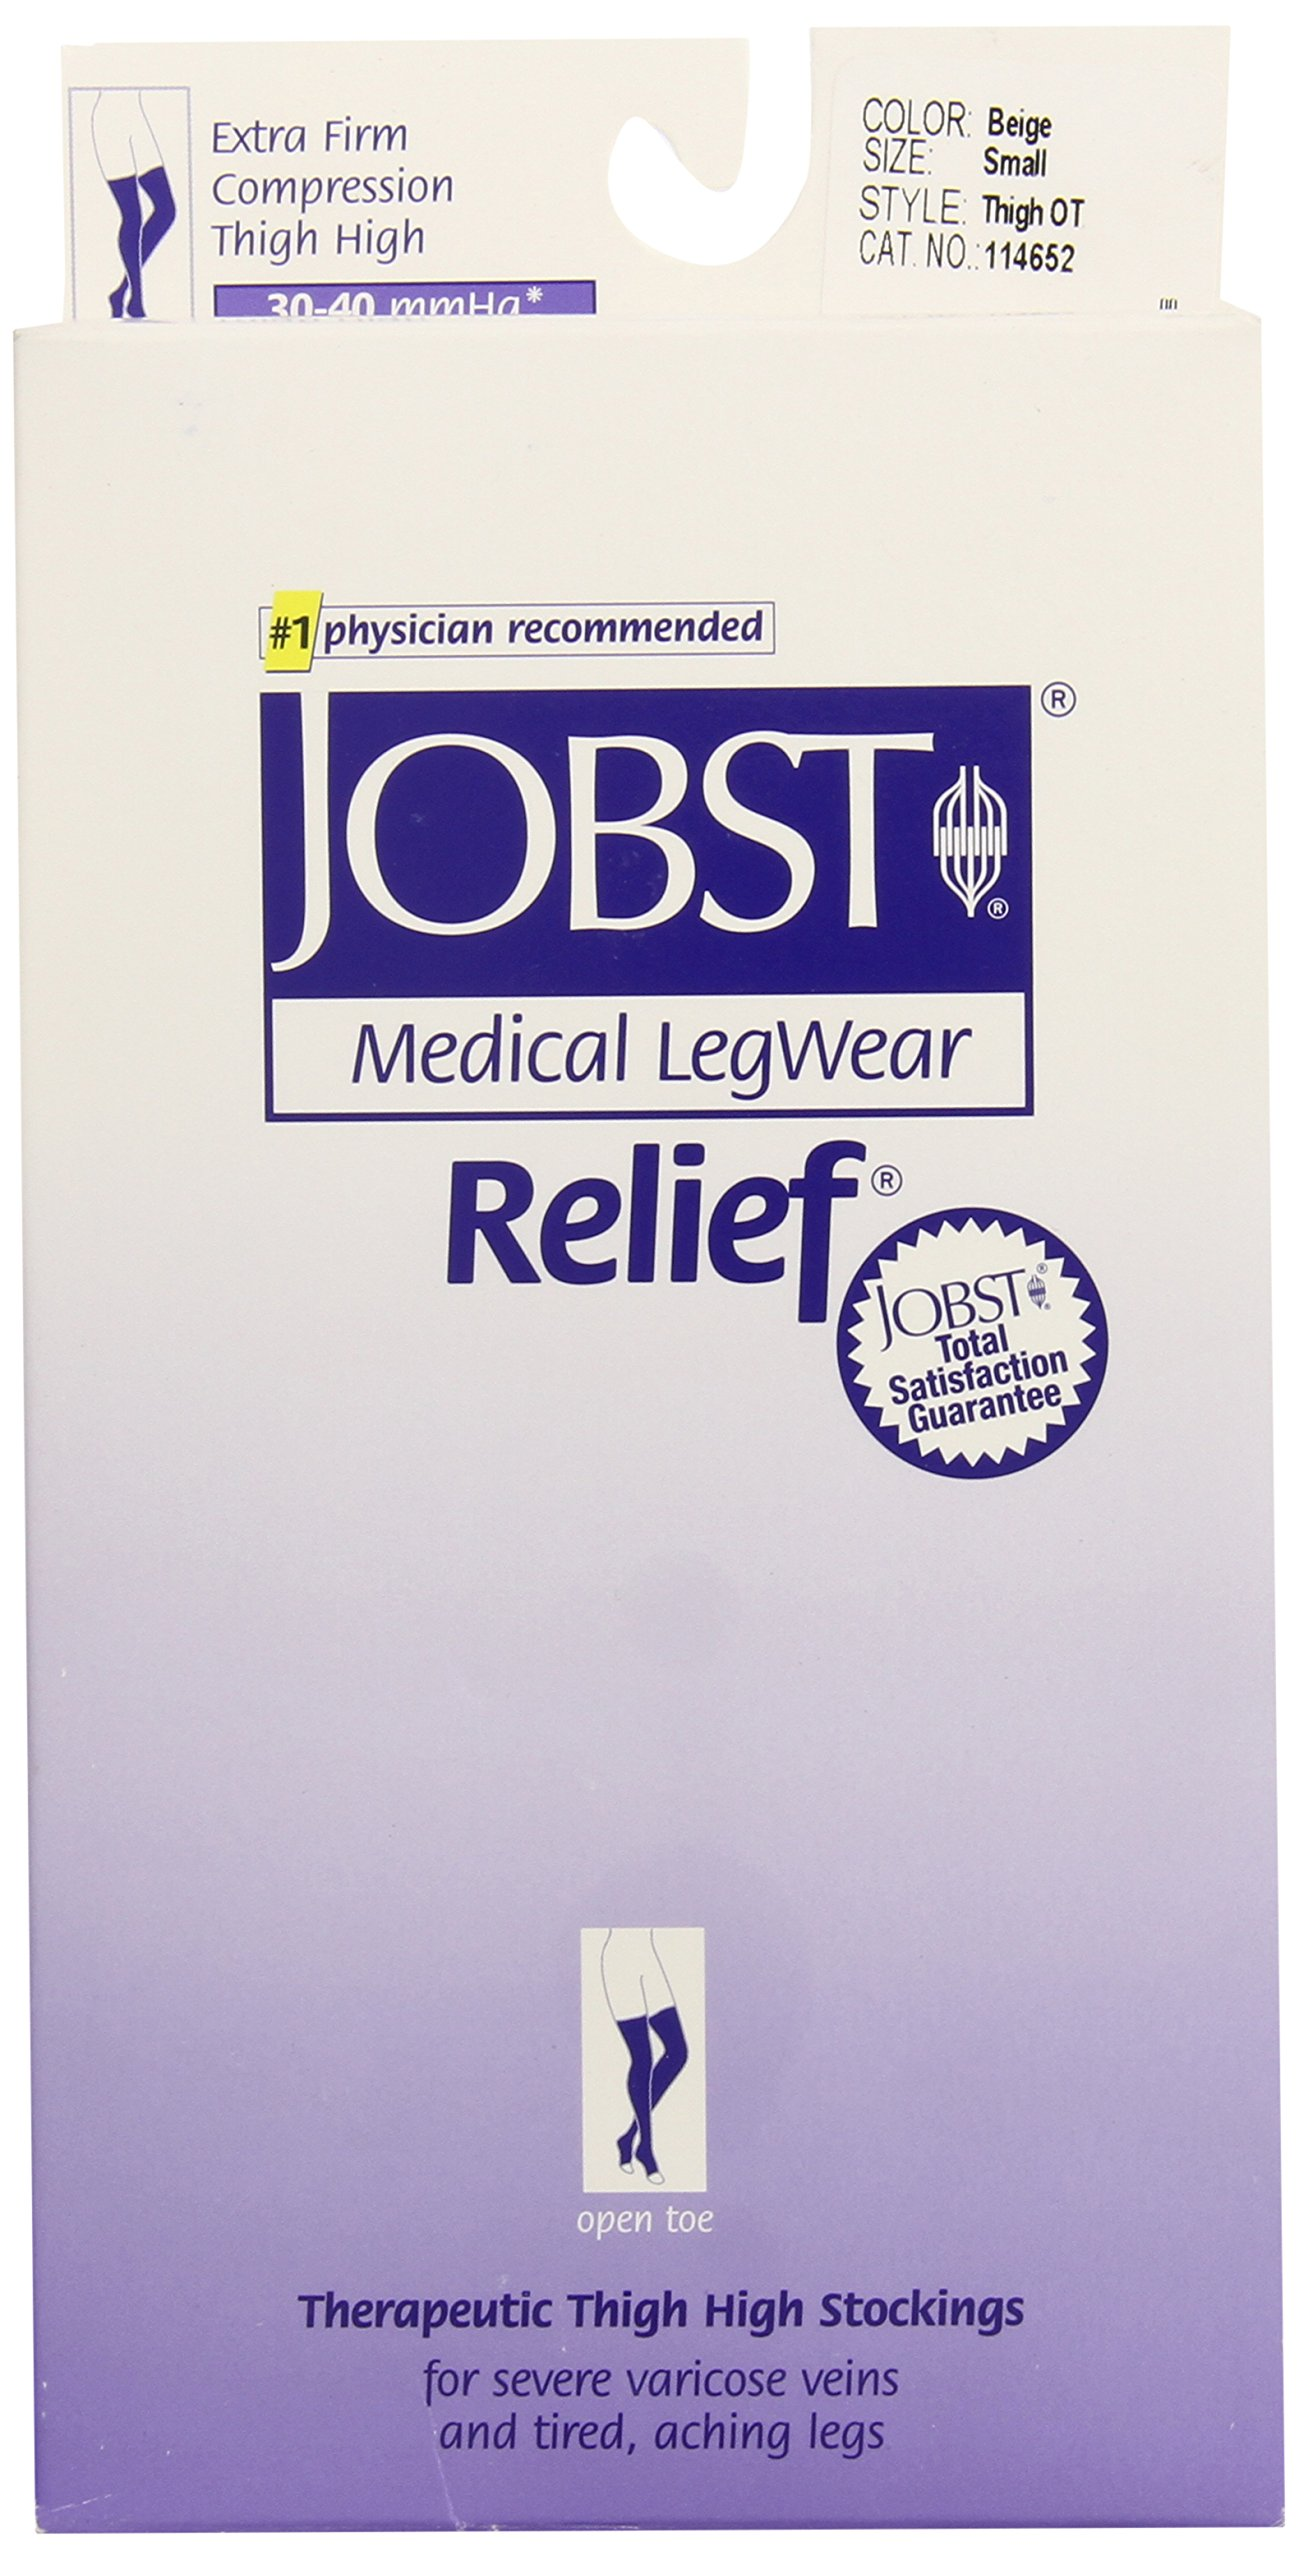 JOBST Relief Compression Stockings, 30-40 mmHg, Thigh High, Open Toe, Beige, Small